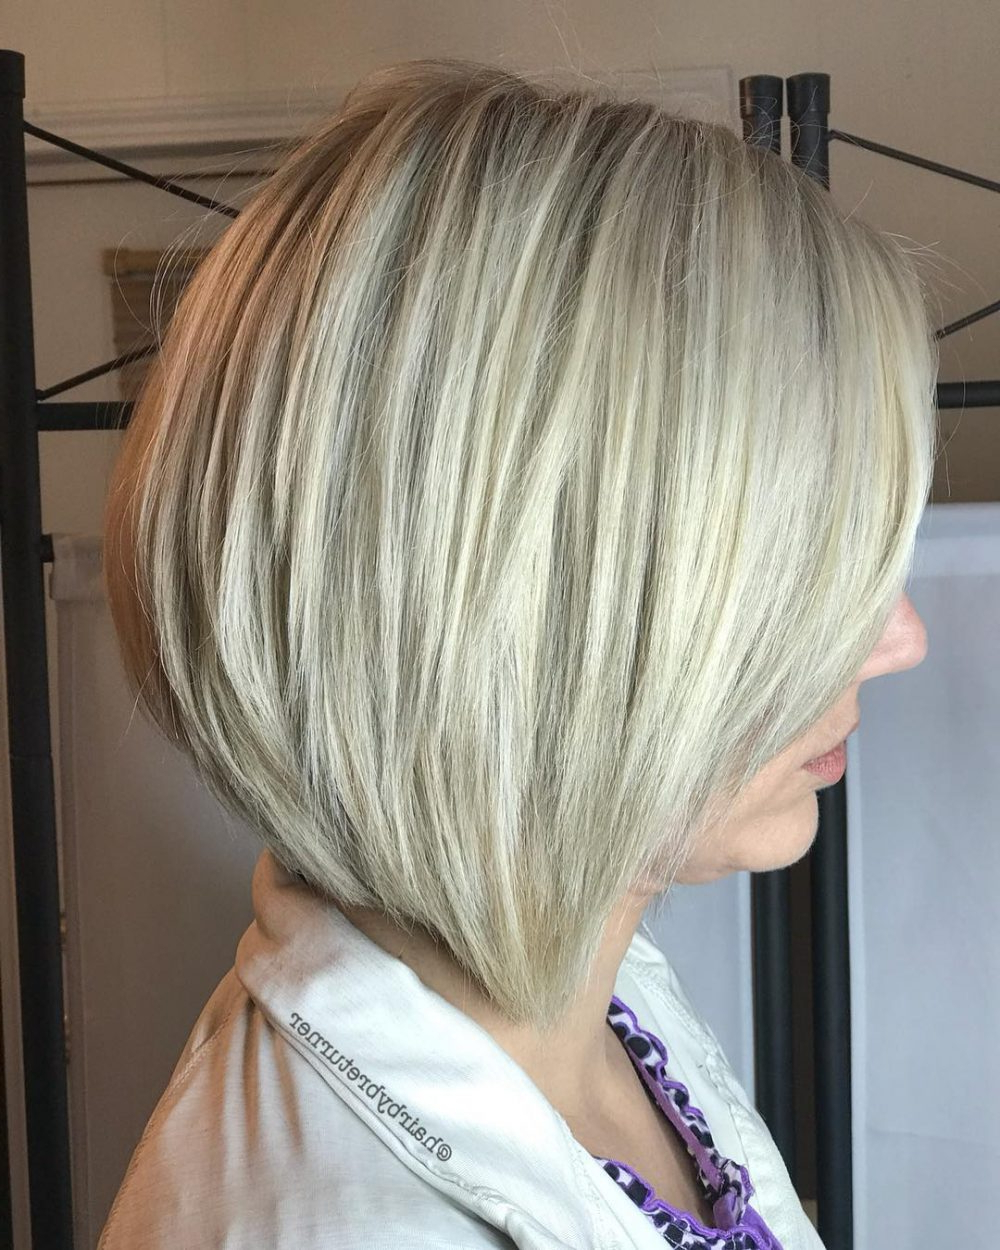 42 Sexiest Short Hairstyles For Women Over 40 In 2018 Inside Short Haircuts For Women In Their 30S (View 11 of 25)